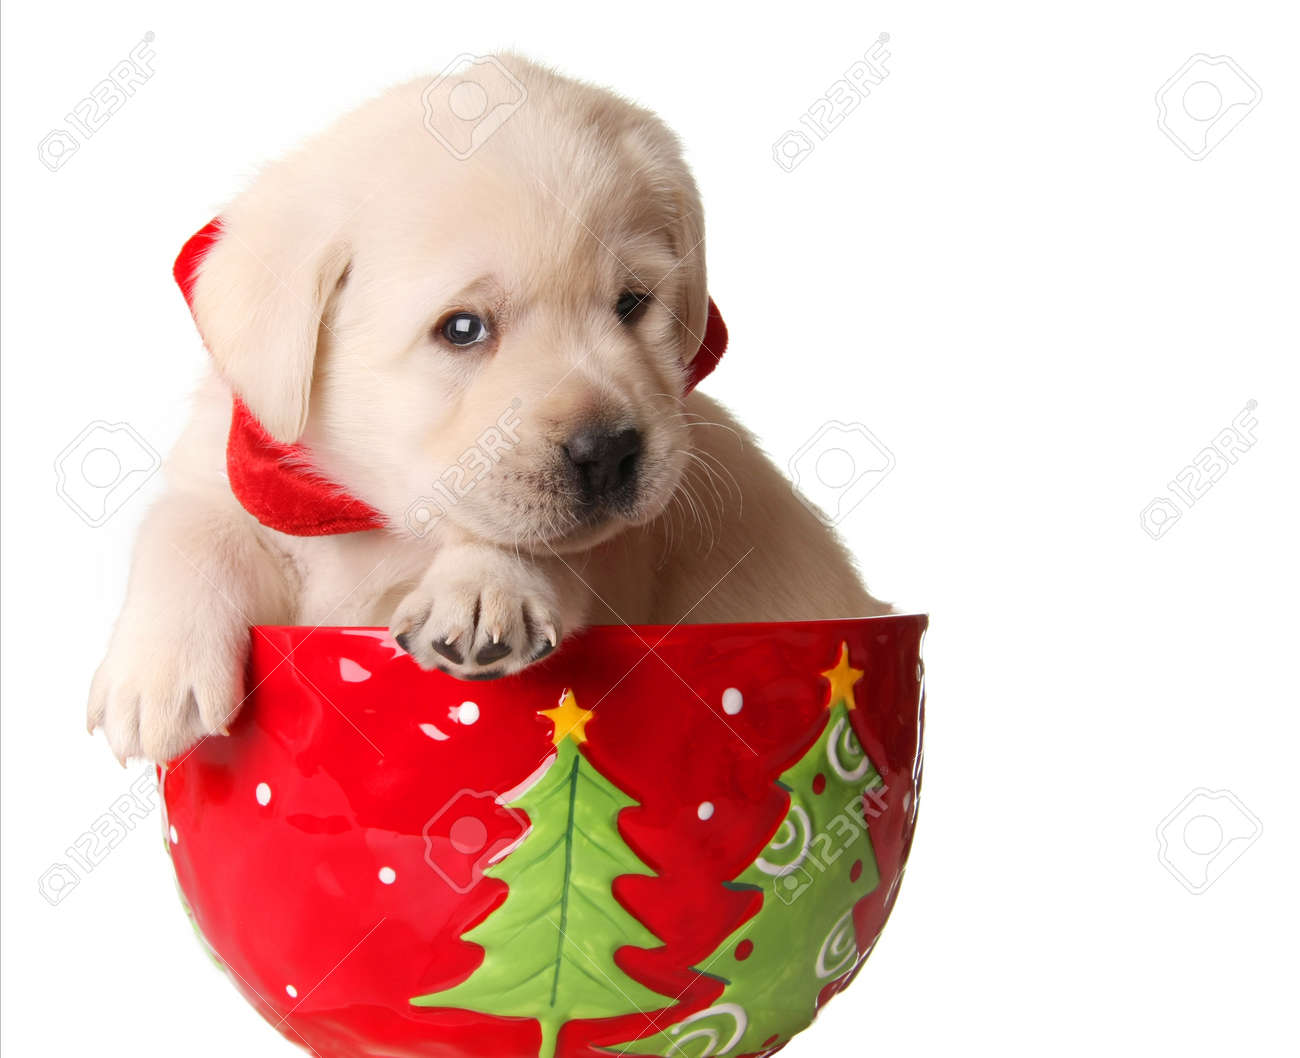 Yellow Labrador Puppy In A Christmas Mug Stock Photo Picture And Royalty Free Image Image 11476673